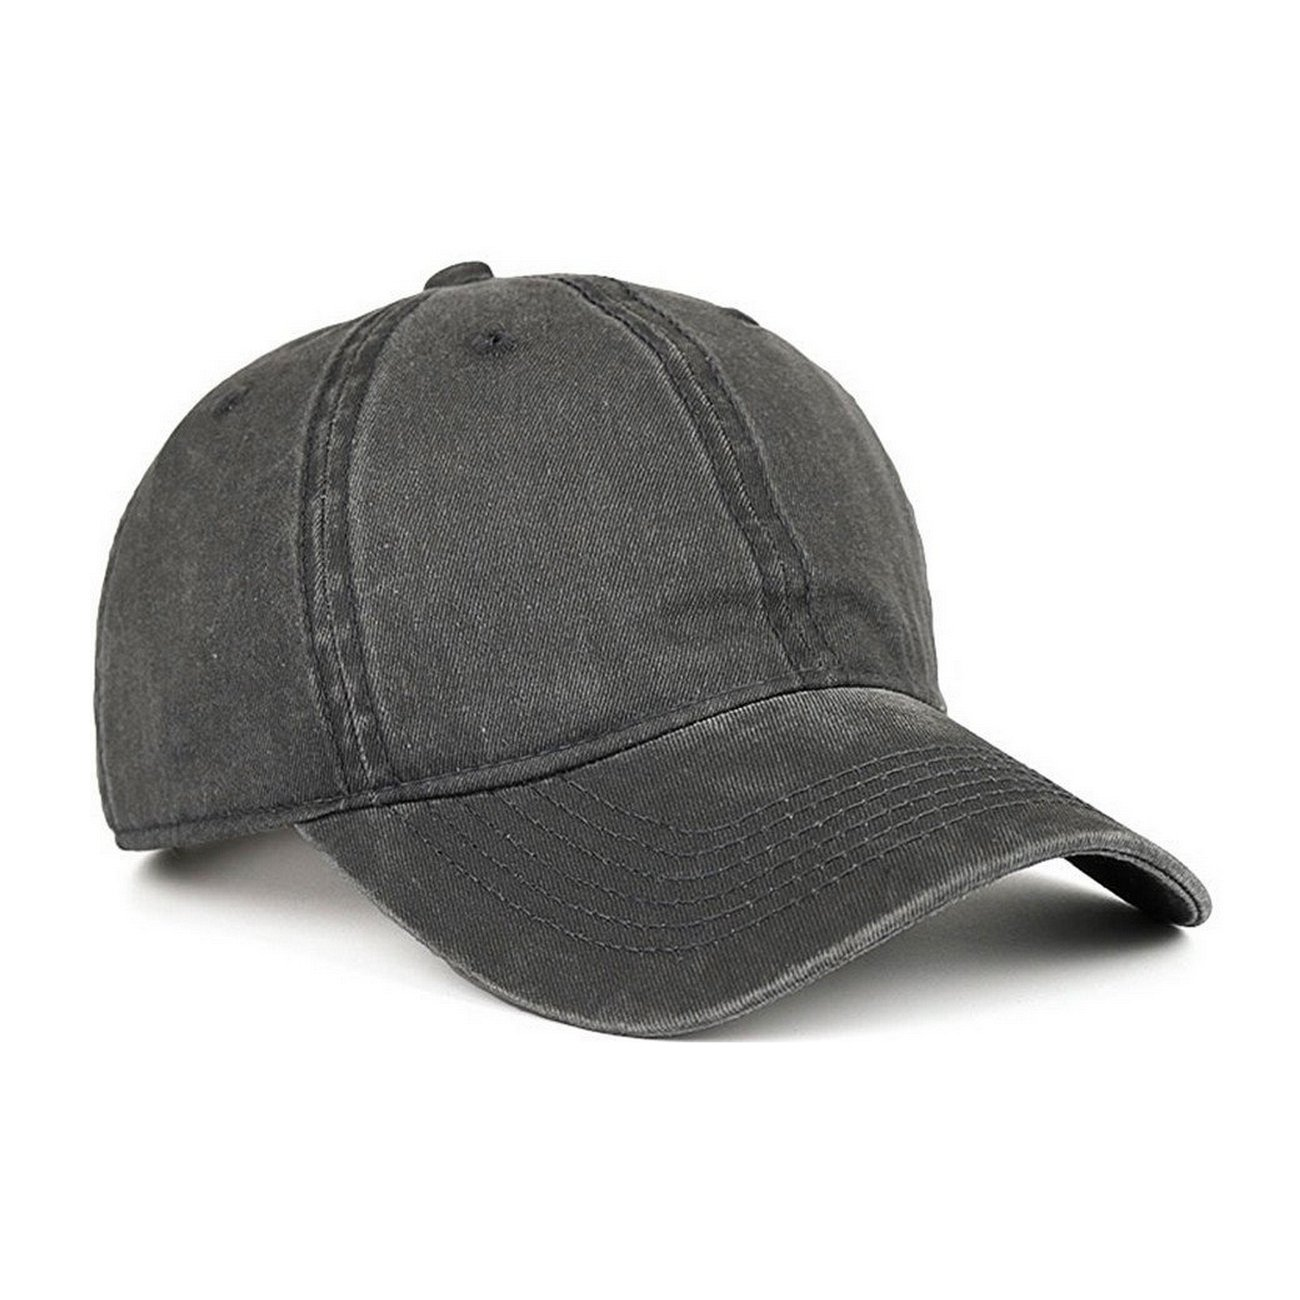 74ce806ce45 VANCIC Low Profile Washed Brushed Twill Cotton Adjustable Baseball Cap Dad  Hat for Men Women (Dark Grey)  Amazon.ca  Sports   Outdoors